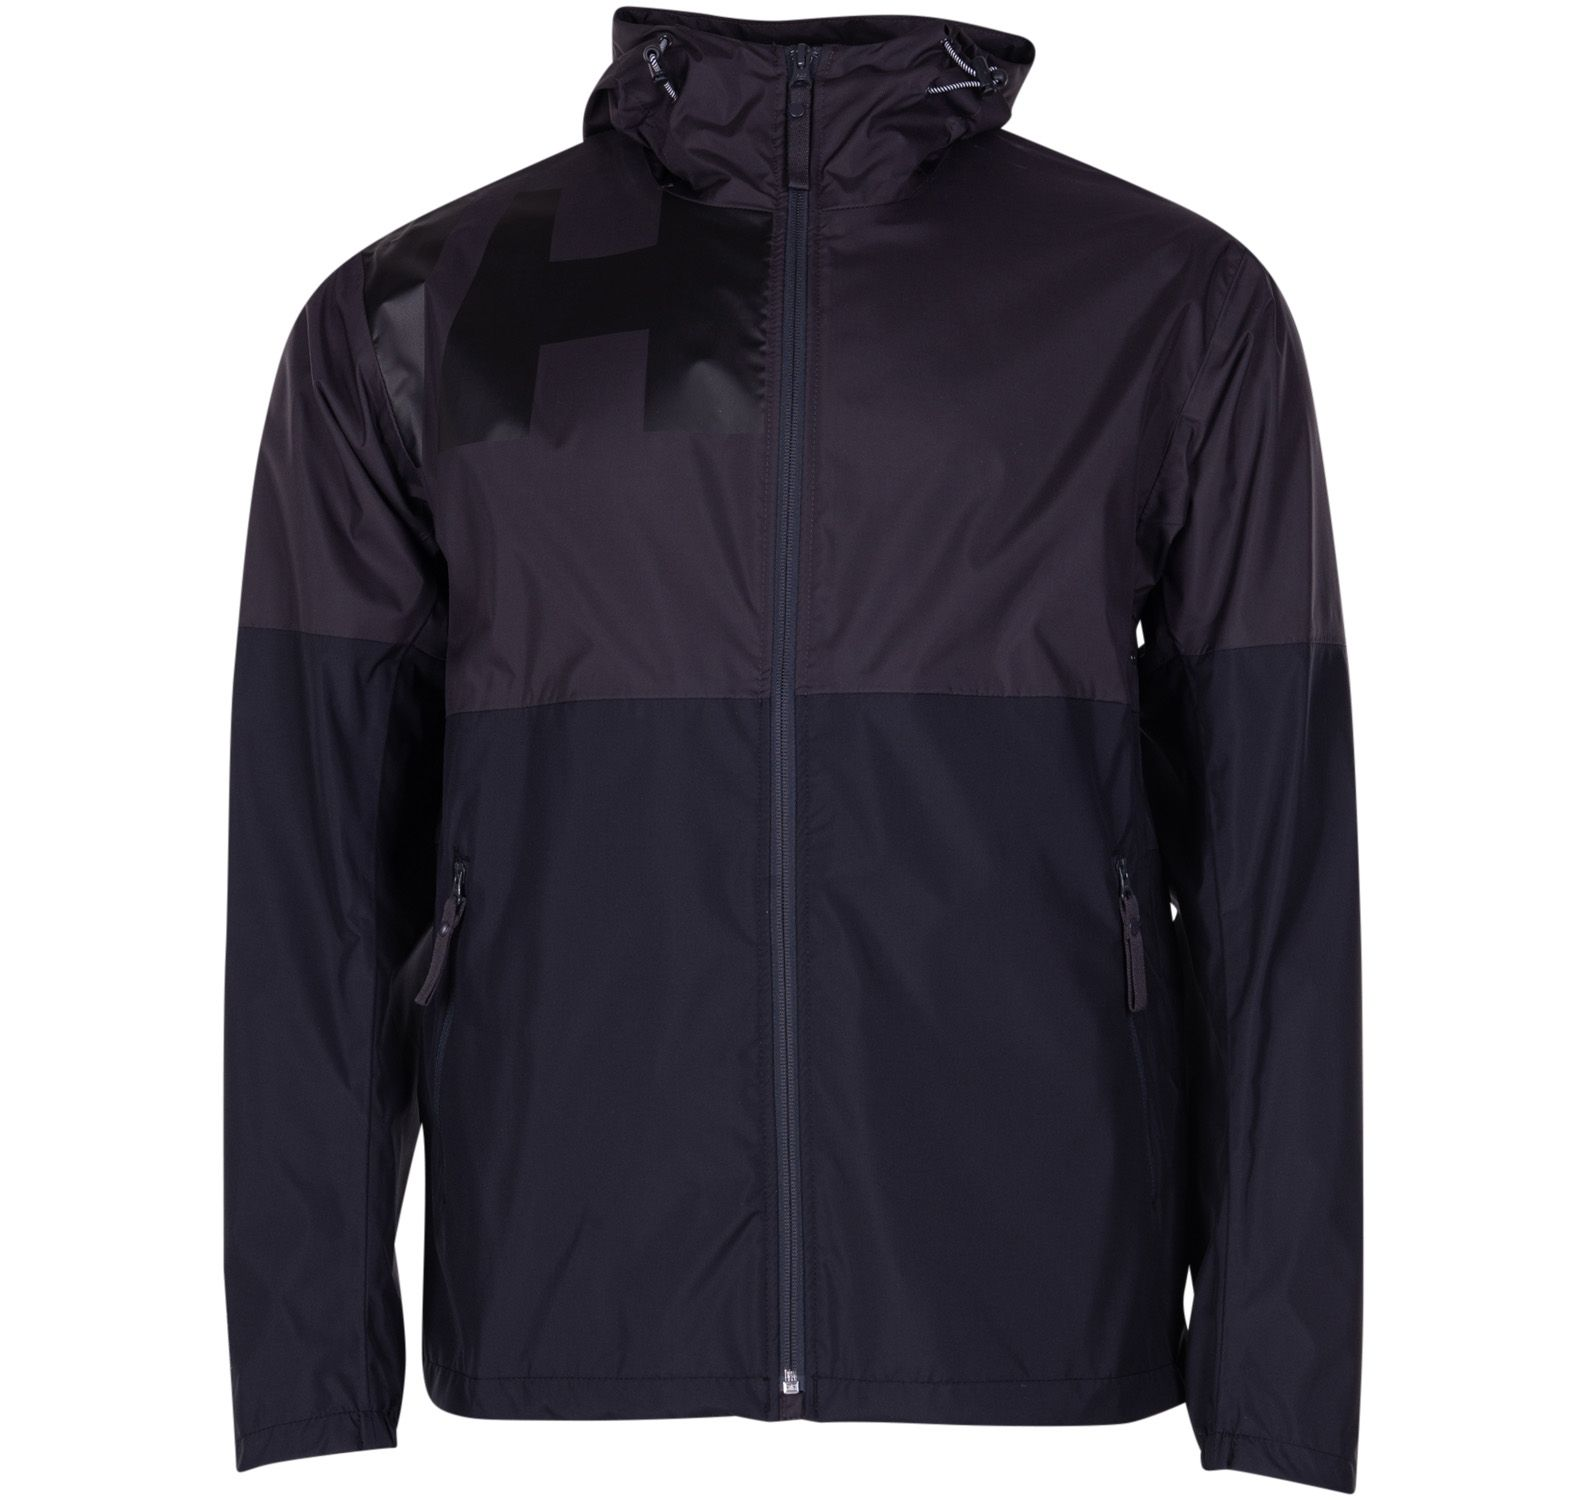 pursuit jacket, black, xxl, regnjackor